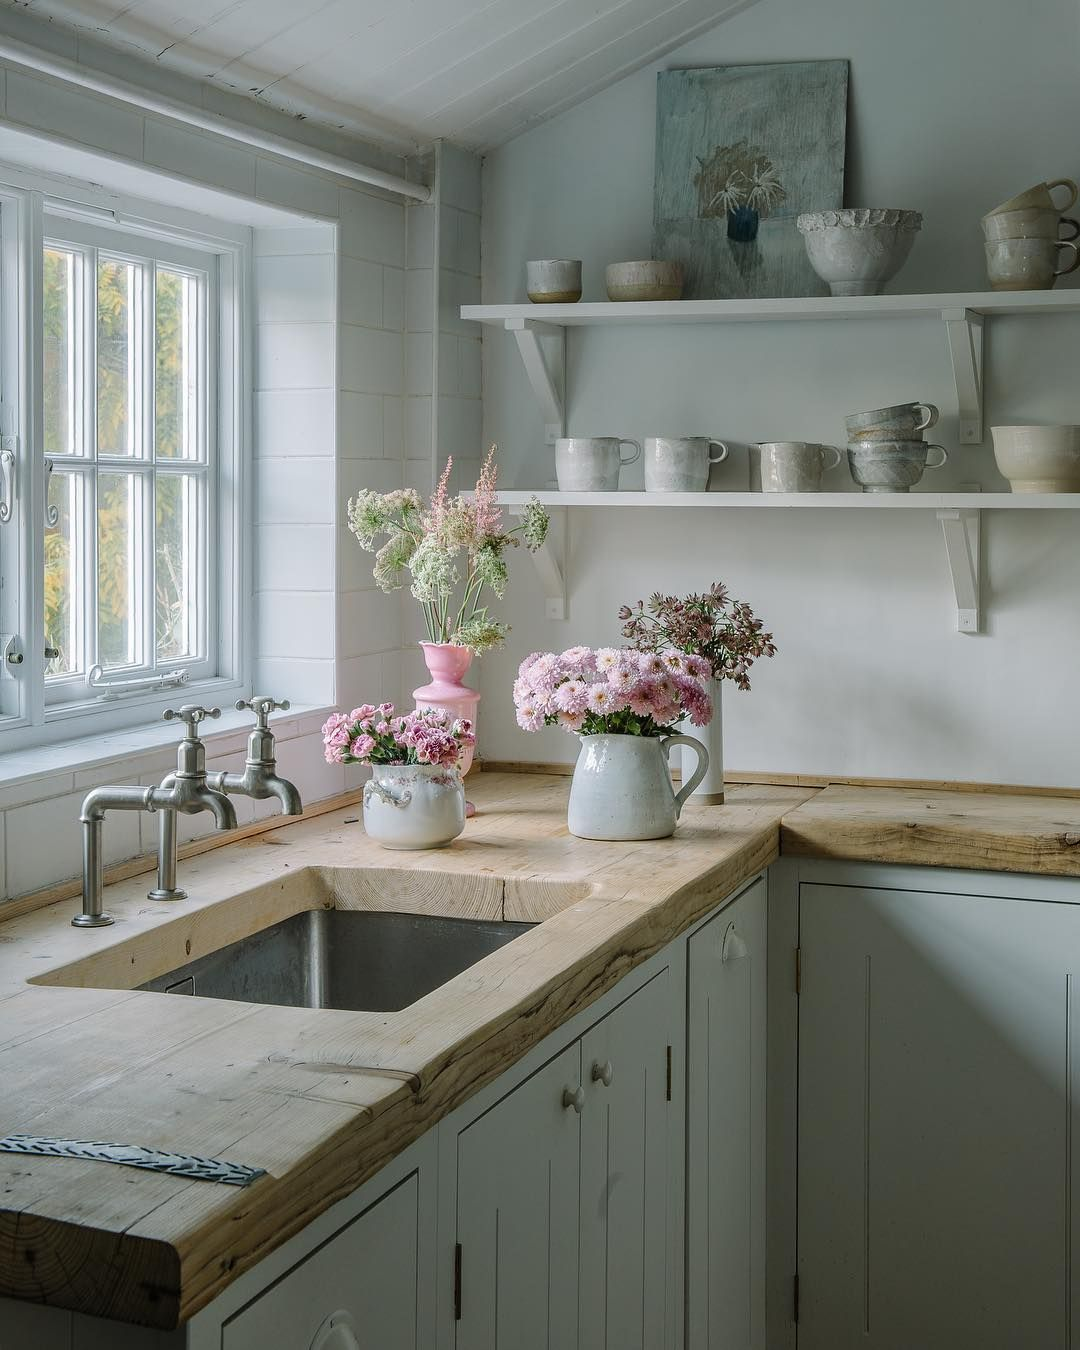 The most stunning, warm, cozy wood countertops in the adorable cottage of Amanda @mysimplehome. Can I please have these beautiful wood countertops in my kitchen ASAP? I enjoy this look so much more than butcher block. #cantaps